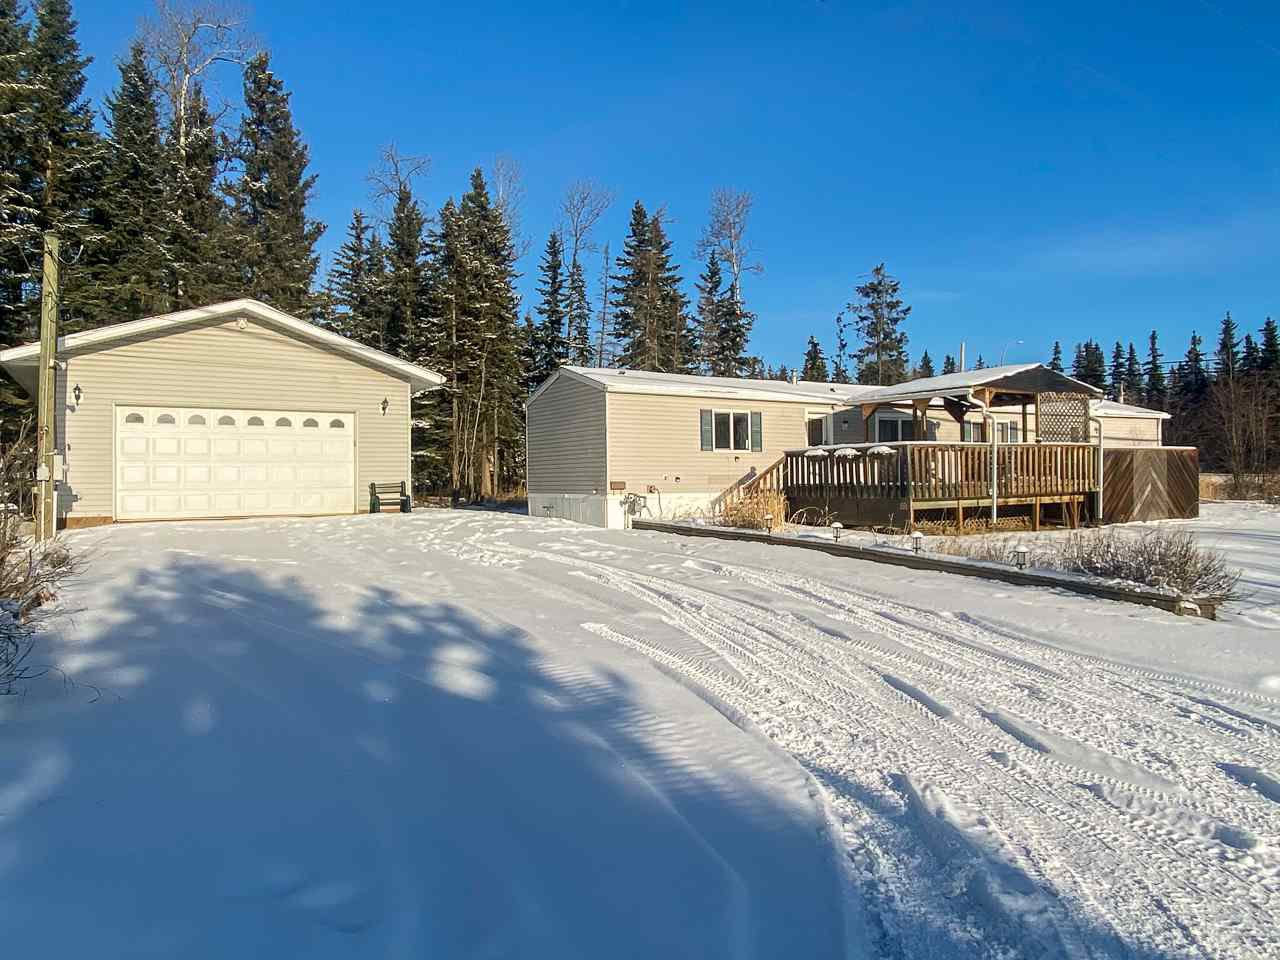 Main Photo: 12924 WEST BYPASS Road in Fort St. John: Fort St. John - Rural W 100th Manufactured Home for sale (Fort St. John (Zone 60))  : MLS®# R2517371